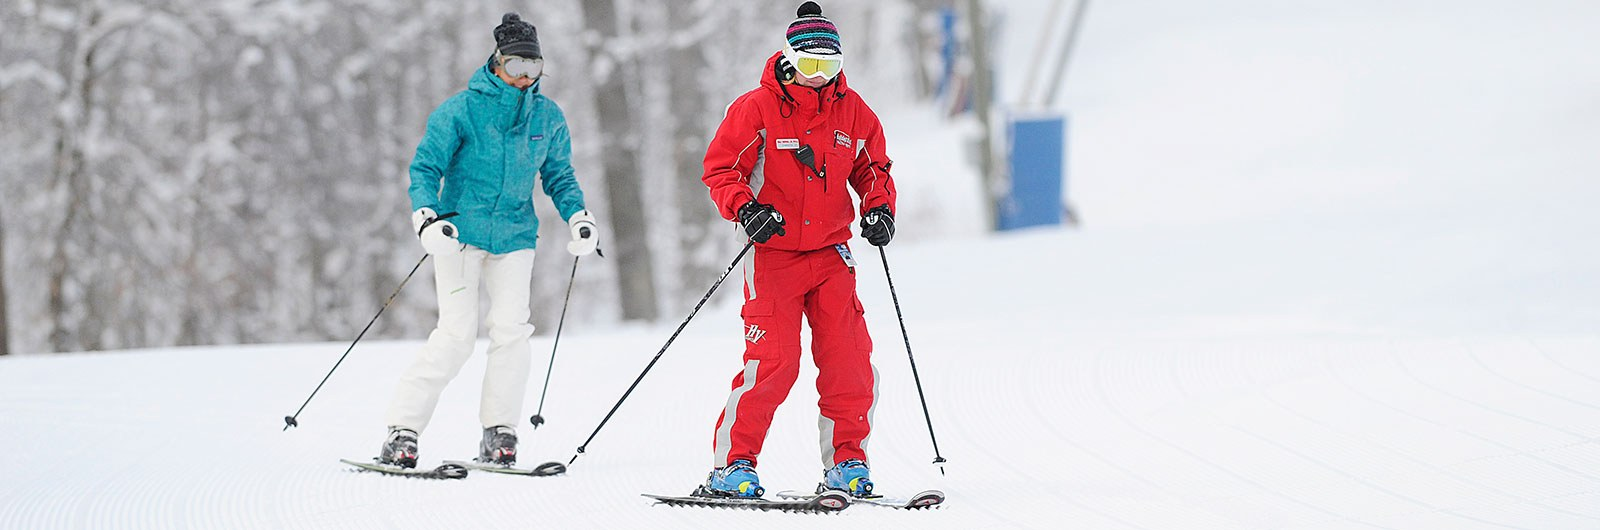 Instructor and student learning to ski